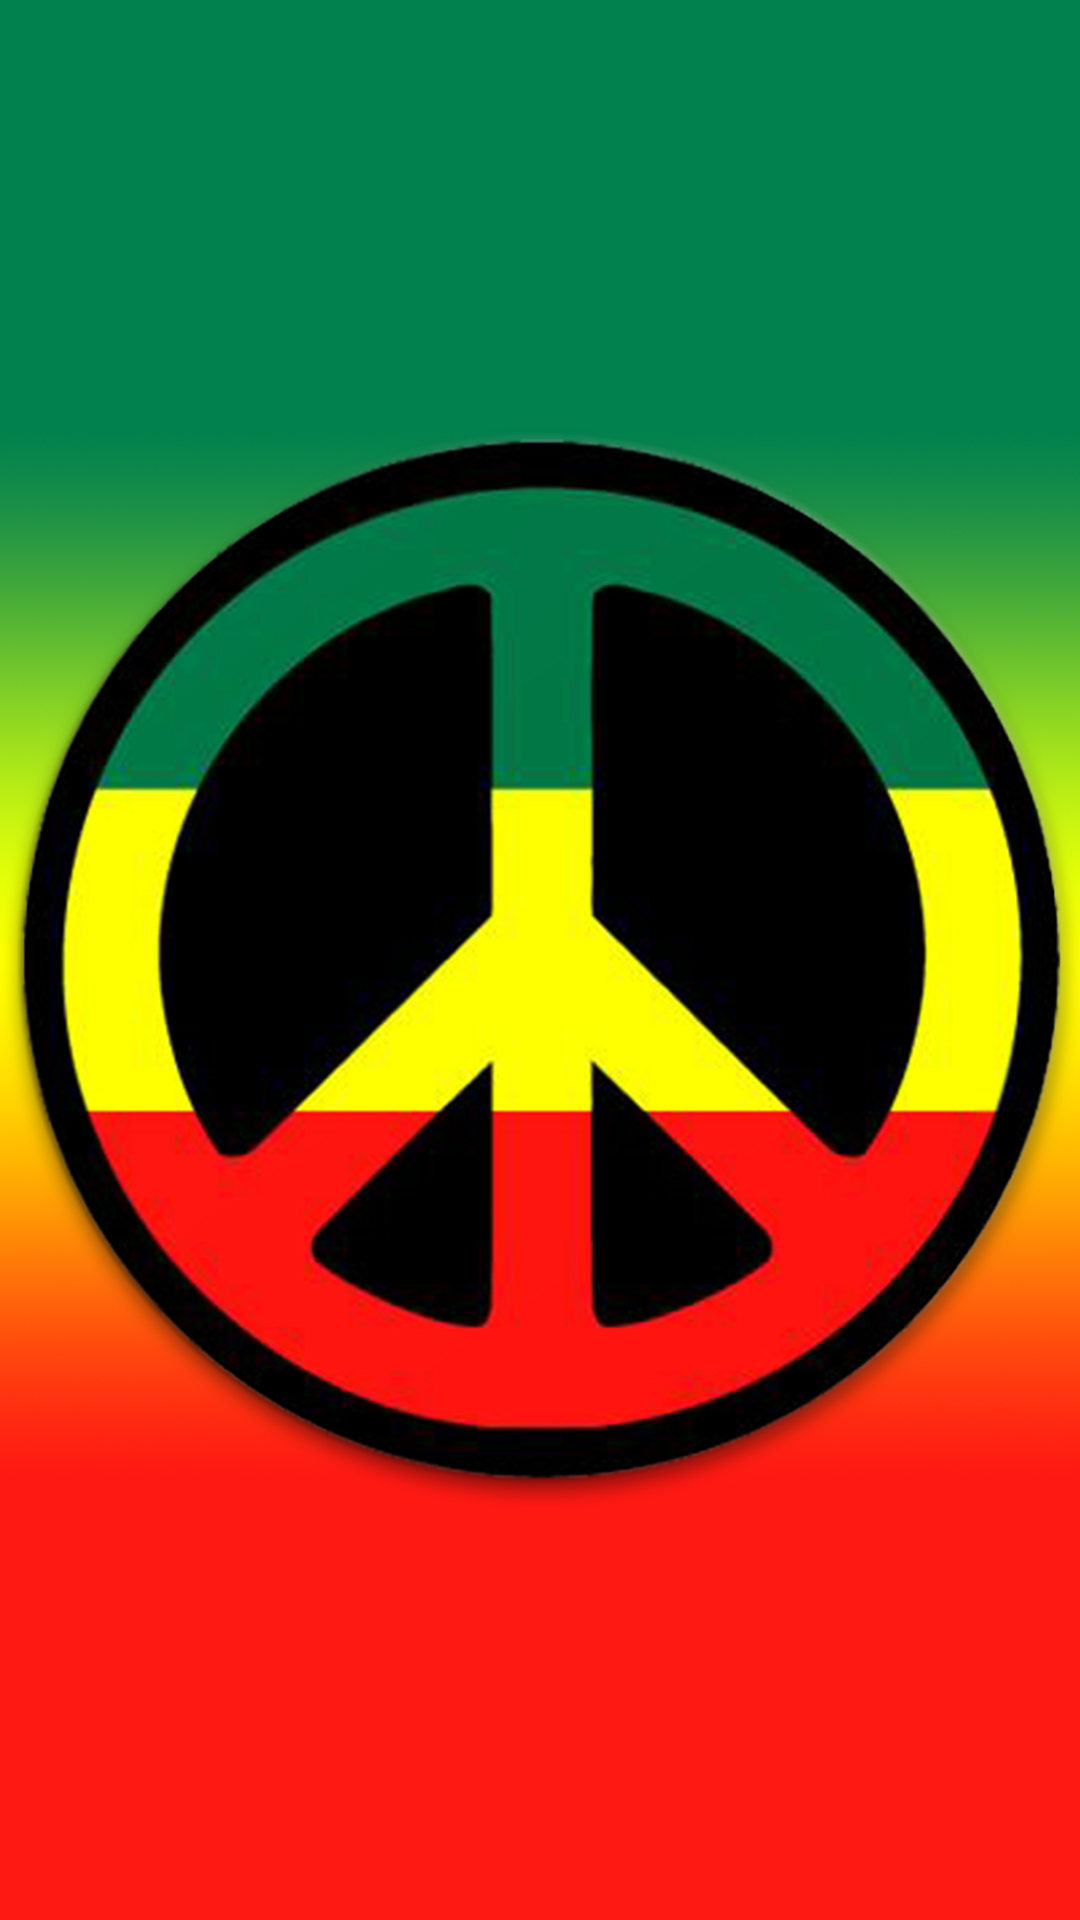 Free hd peace phone wallpaper 4201 - Peace hd wallpapers free download ...